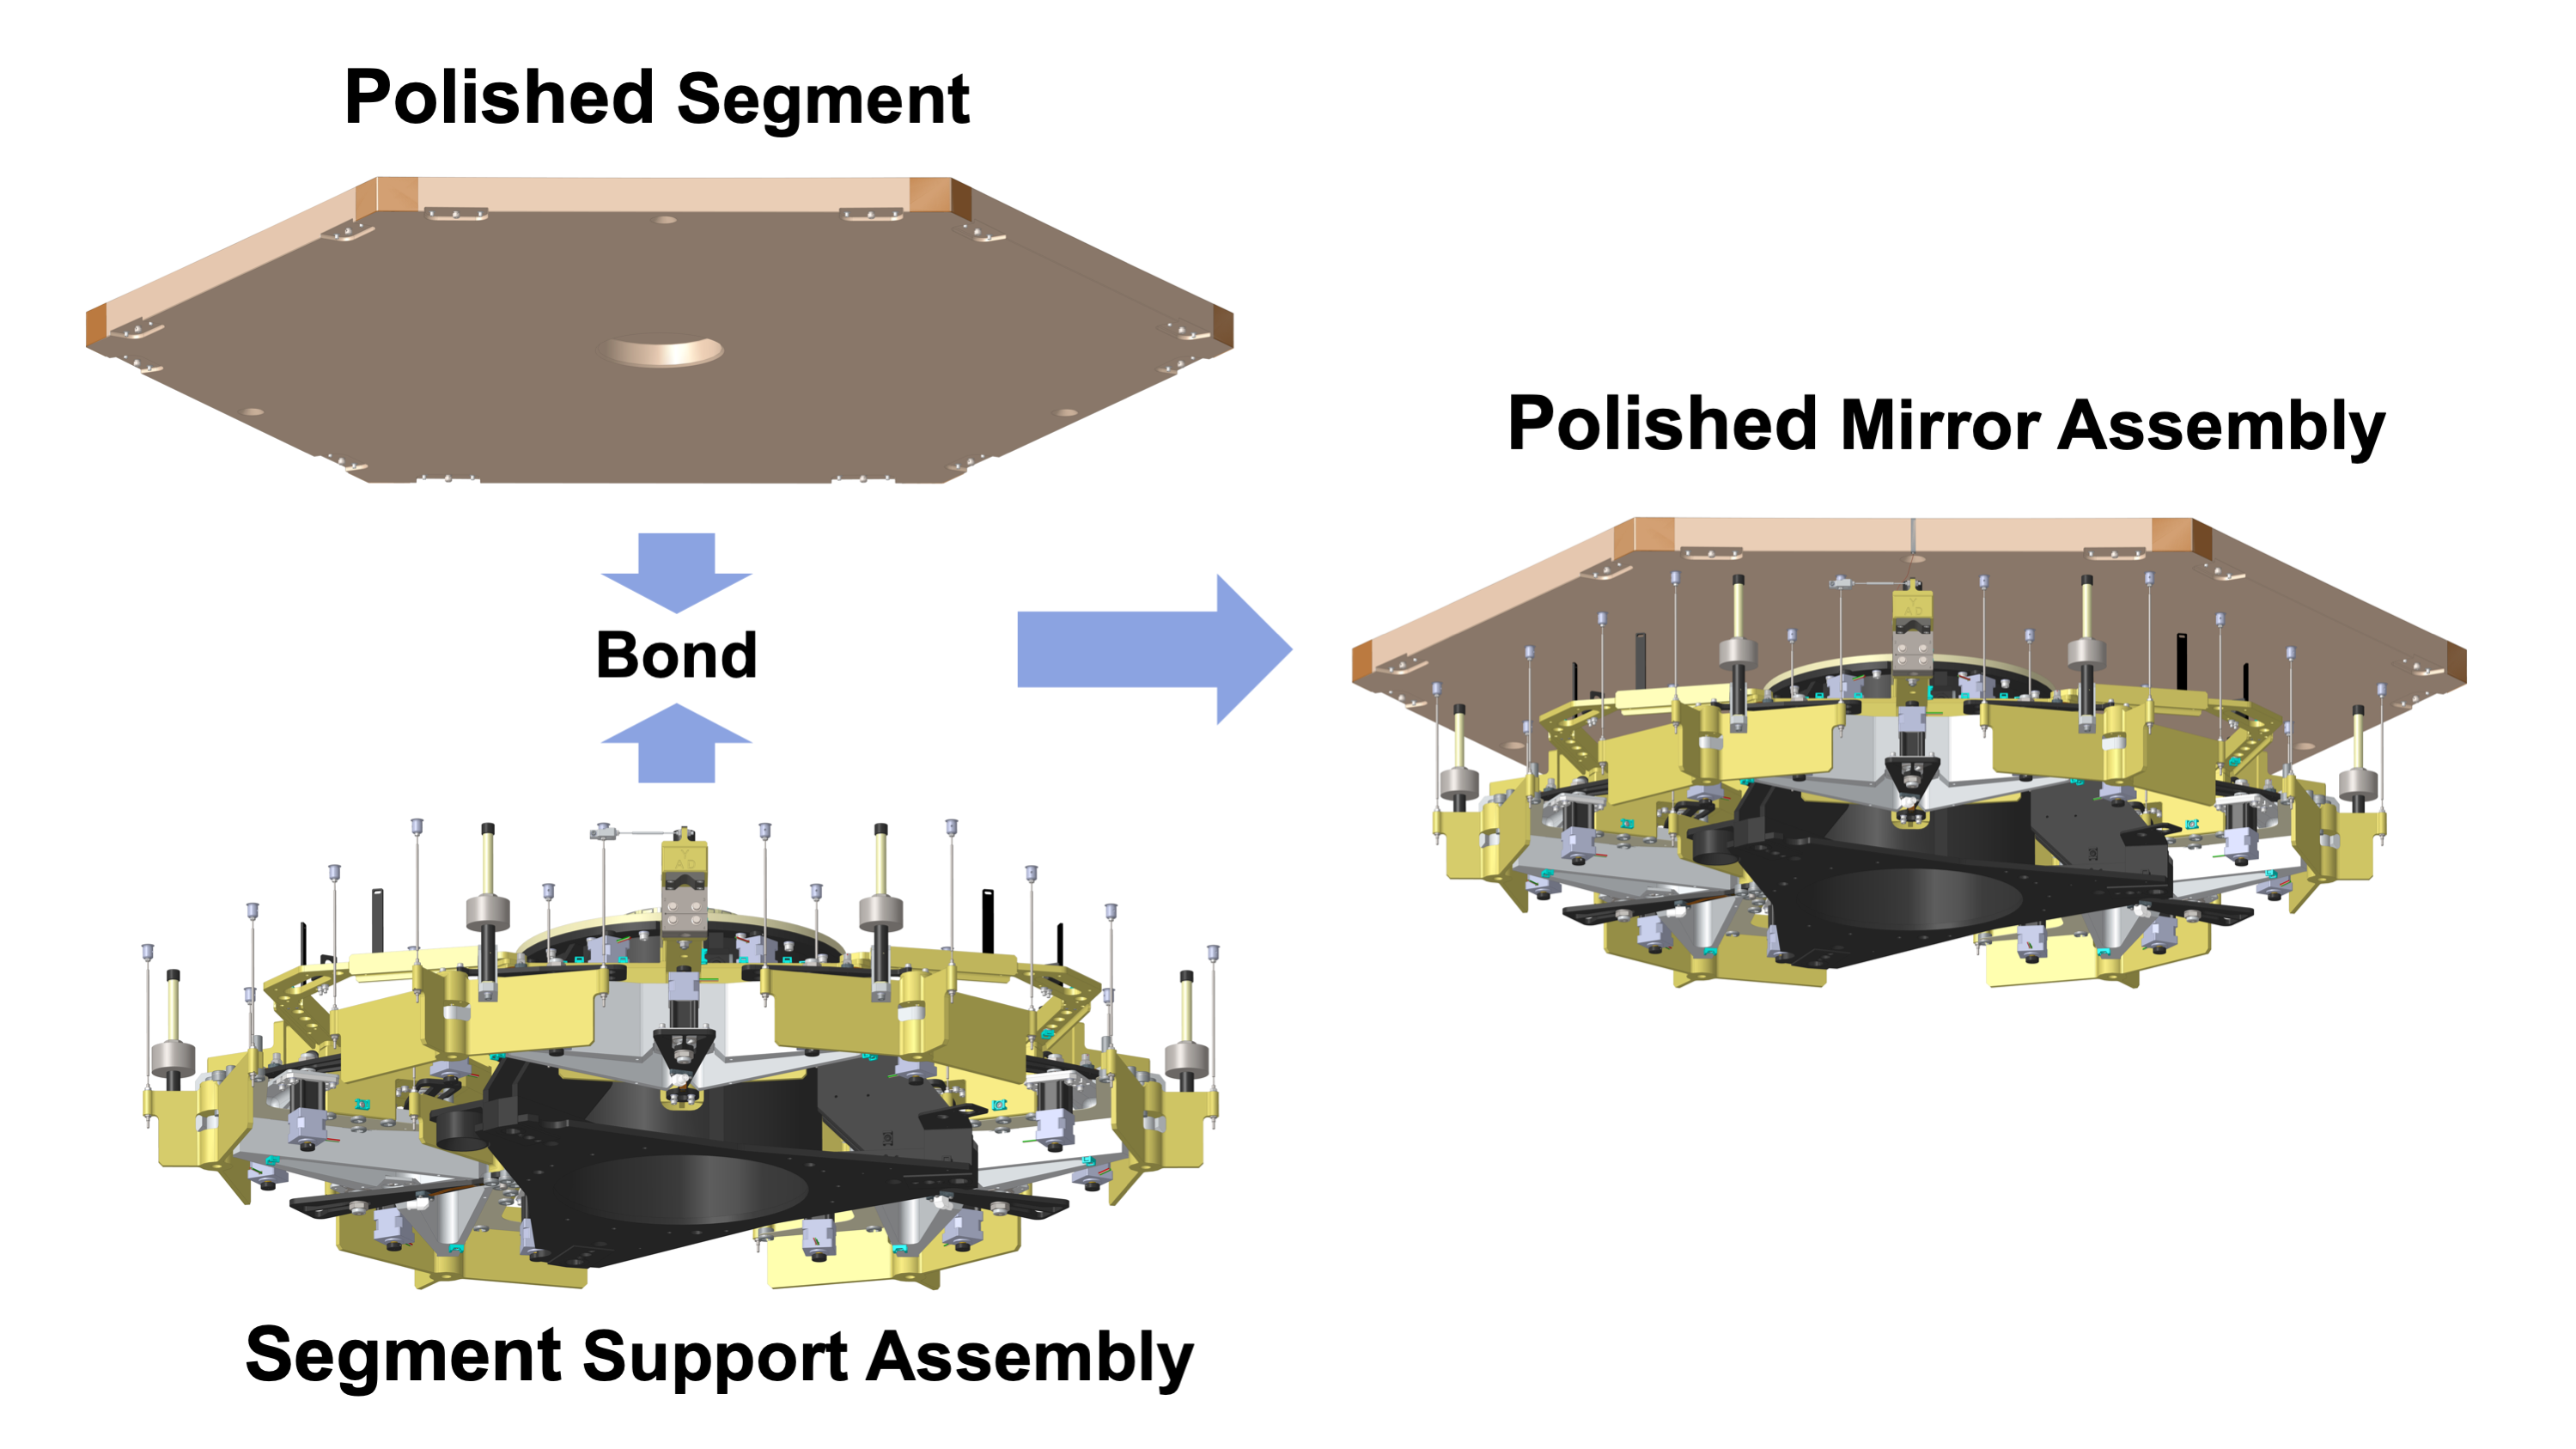 Polished Mirror Assembly